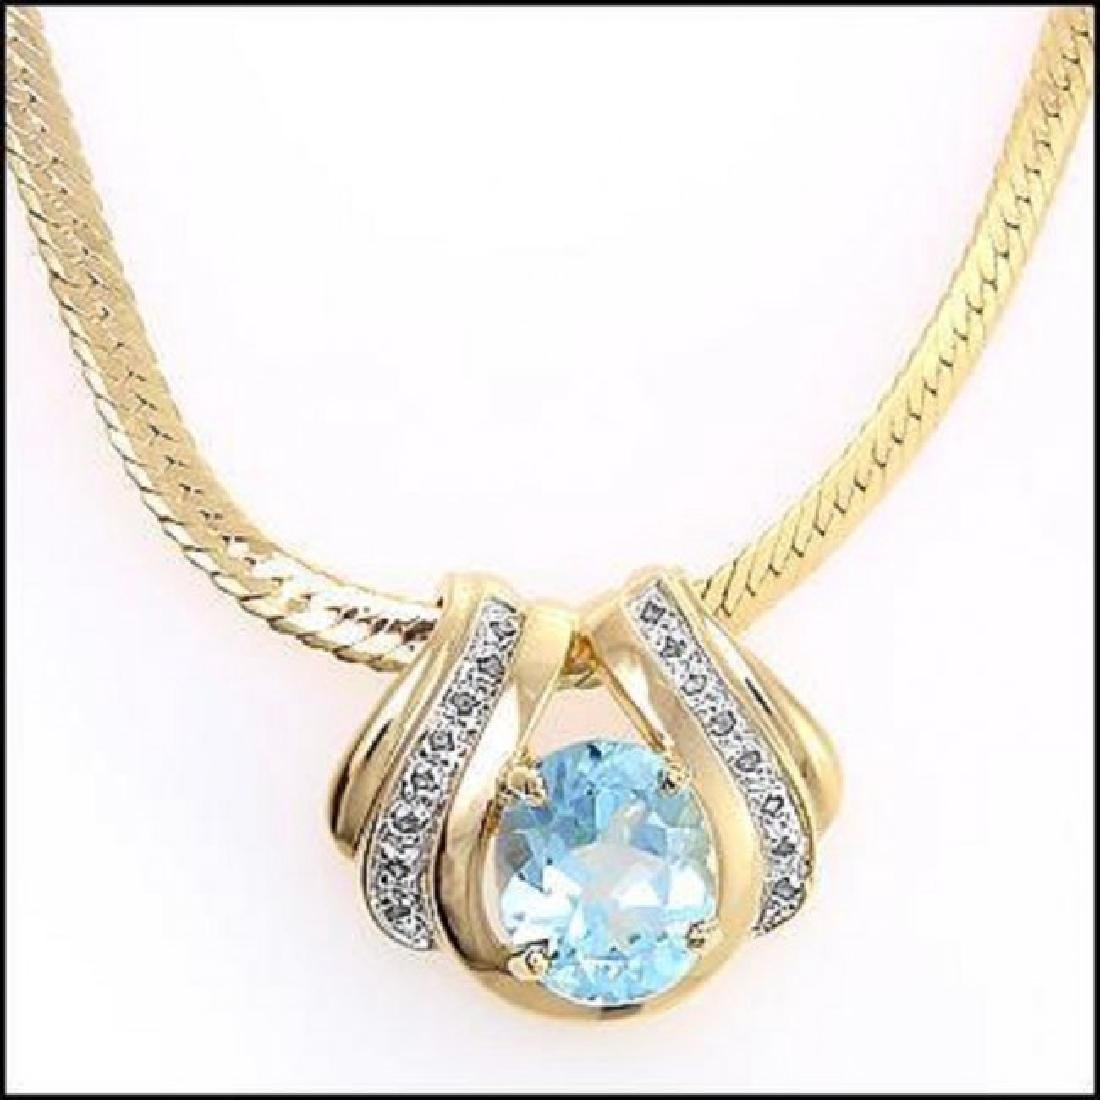 7.49 CT Blue Topaz & Diamond Designer Fine Necklace - 2